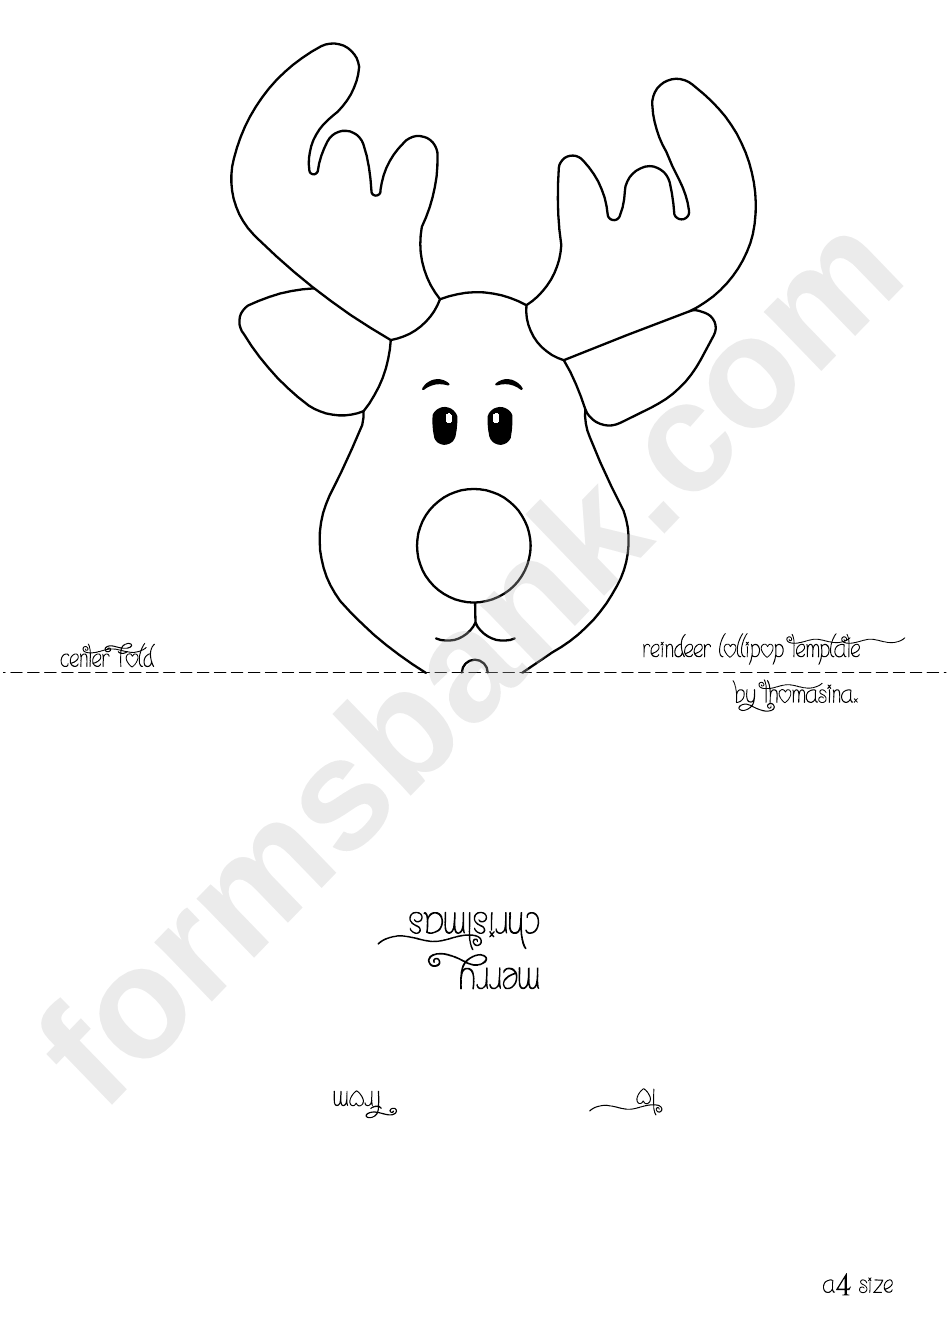 reindeer head template for lollipop printable pdf download